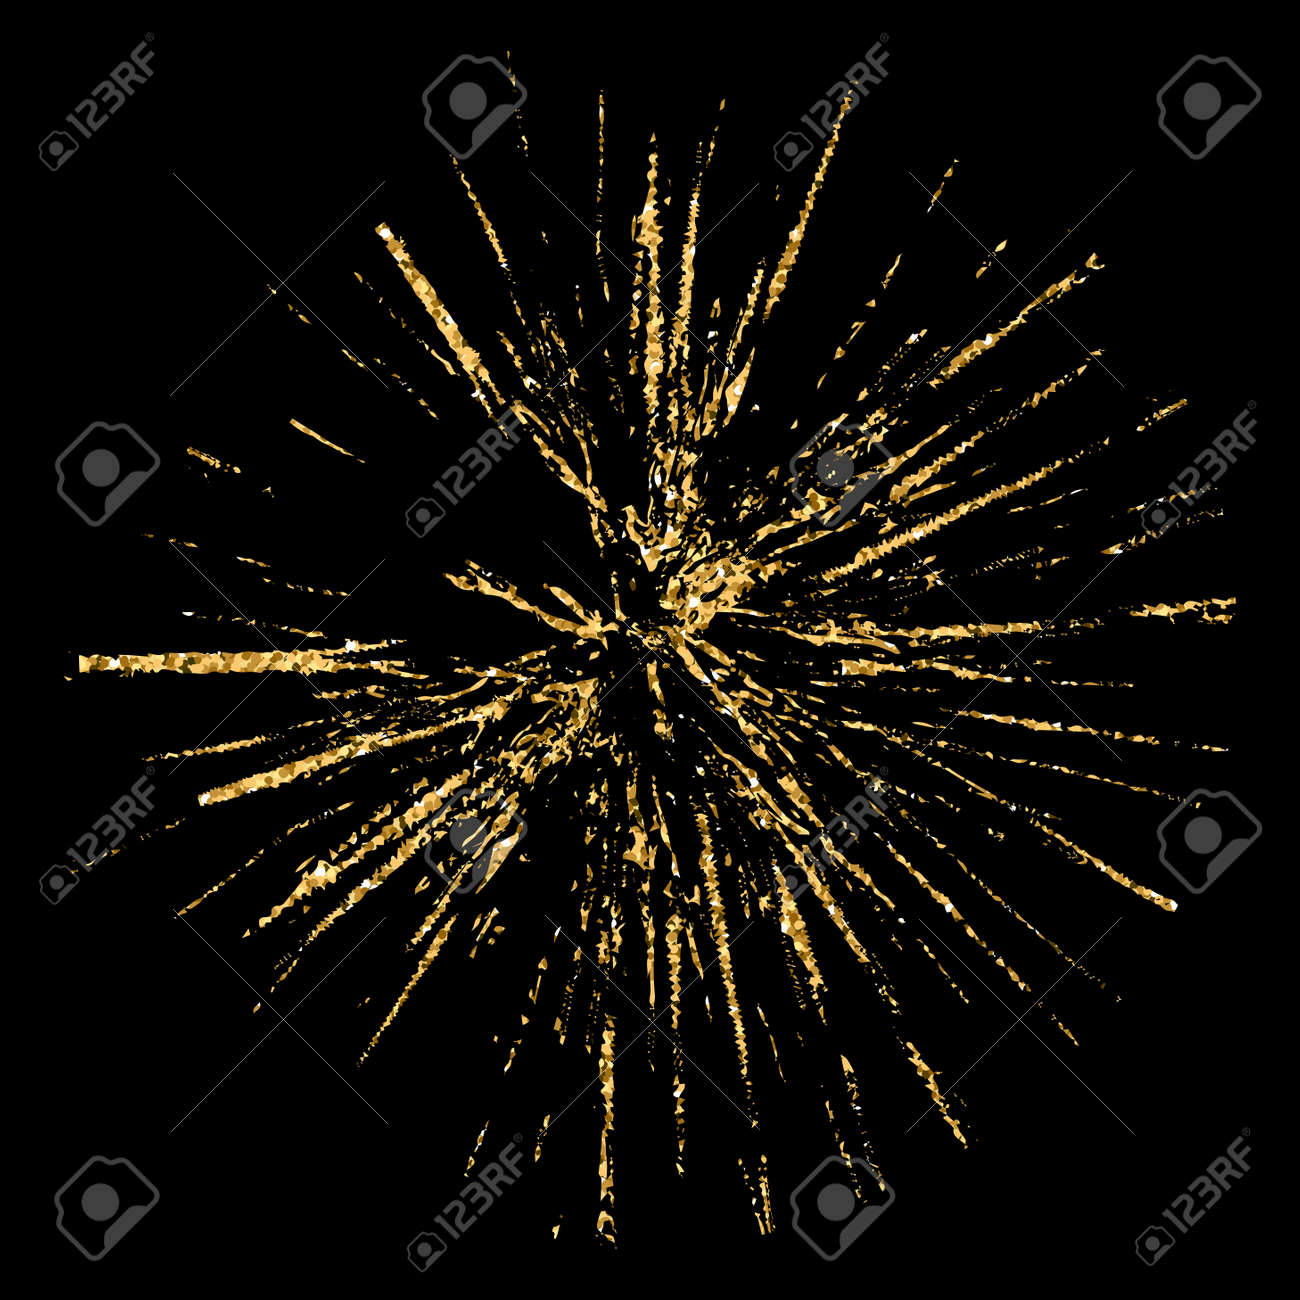 Broken glass hole grunge texture gold and black. Sketch abstract to create distressed effect. Overlay distress golden grain design. Stylish modern background for print products. illustration Stock Photo - 73497081